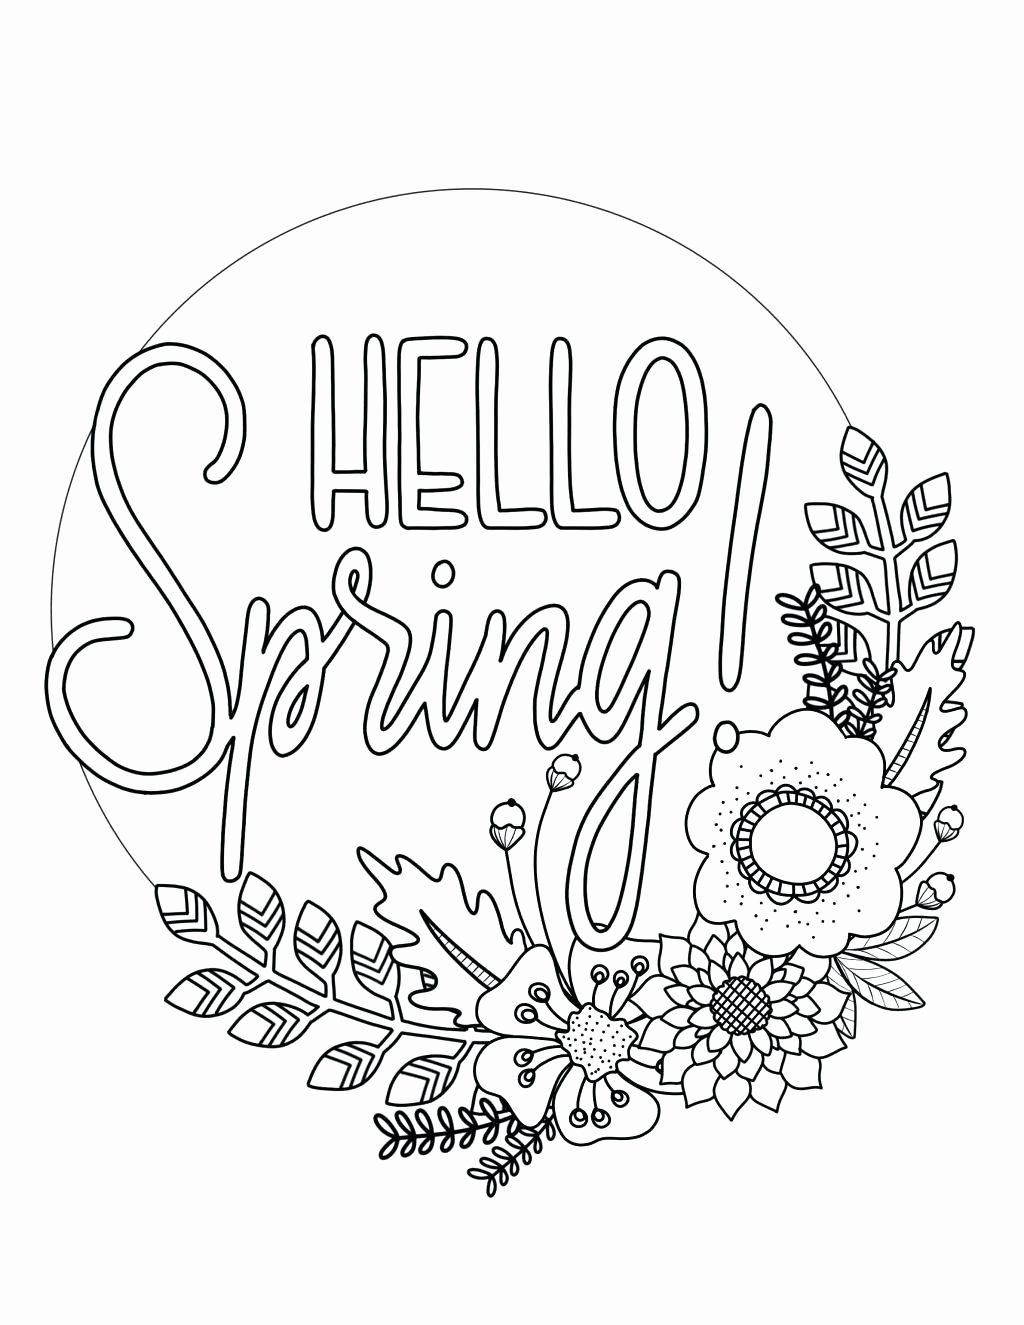 Spring Coloring Sheets For Adults Elegant Free Printable Coloring Pages Spring Flowers Sho Spring Coloring Sheets Spring Coloring Pages Flower Coloring Pages